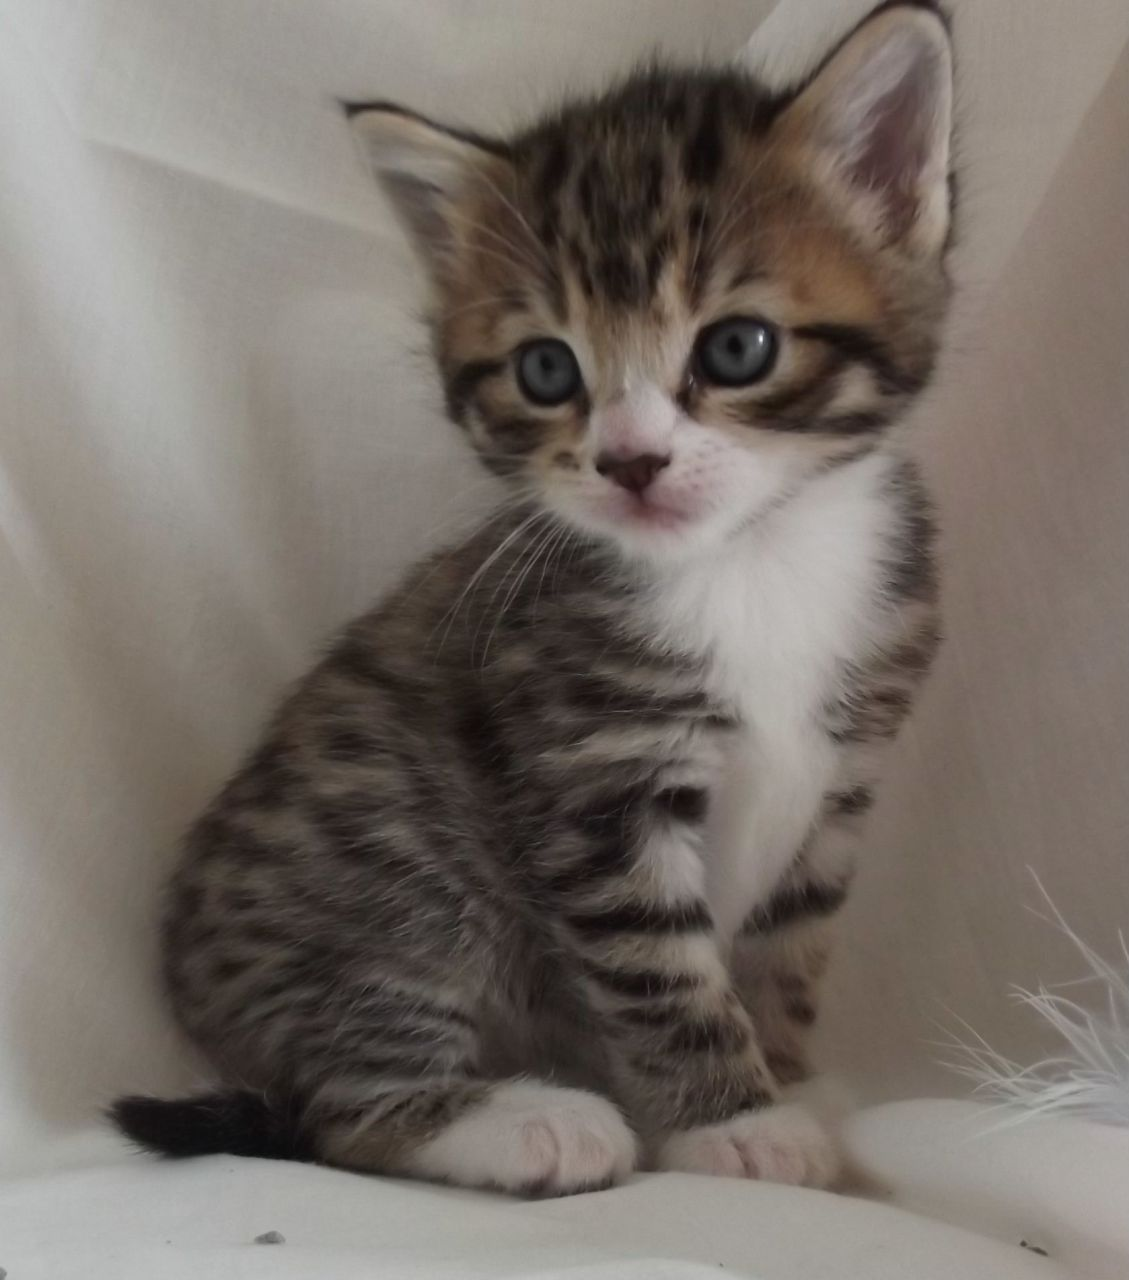 Google themes kittens - Gray Brown And White Kittens With Blue Eyes Google Search More